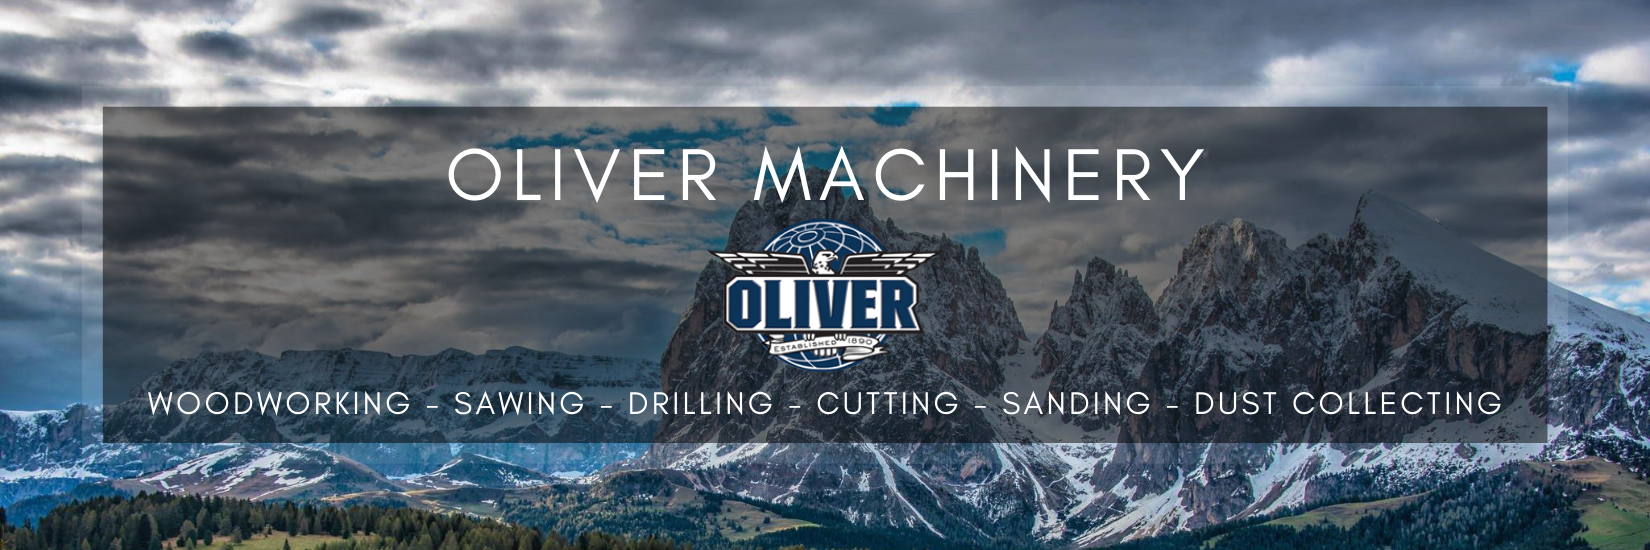 View Oliver Machinery